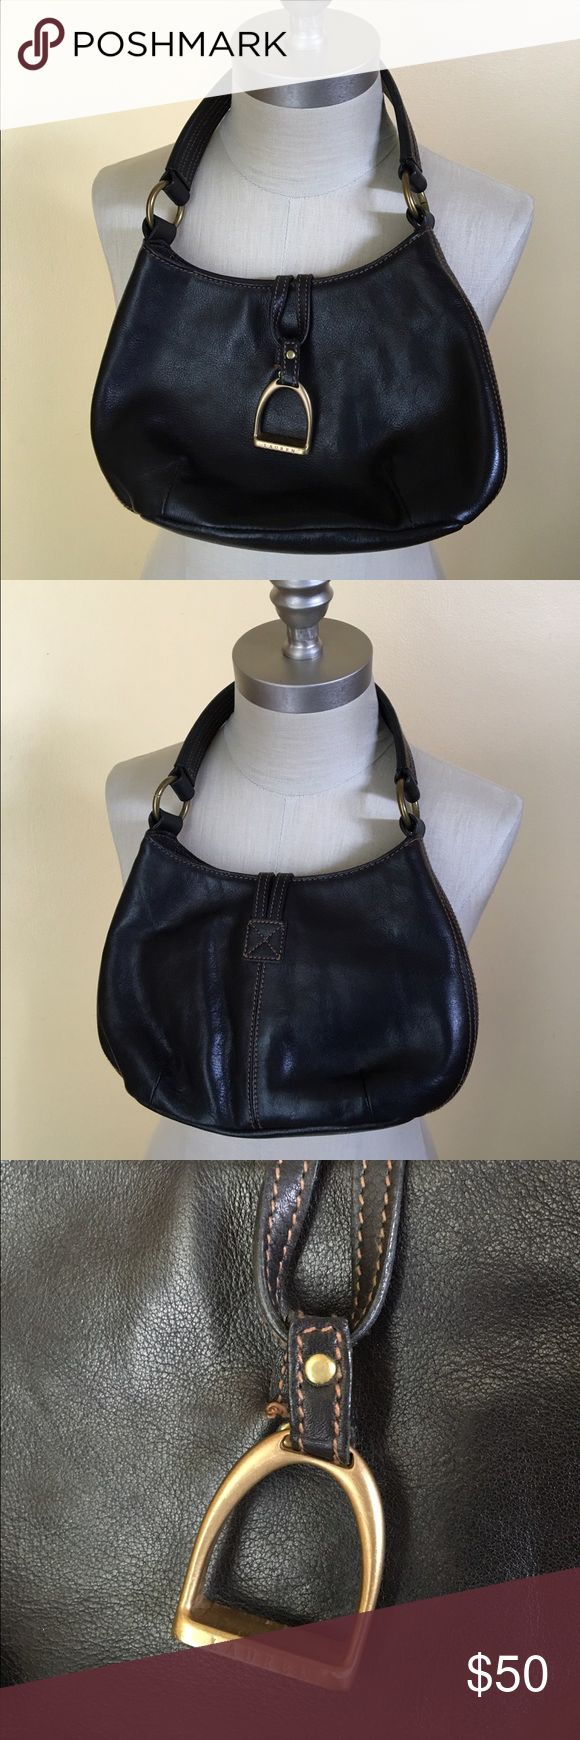 """equestrian style handbag what a joyful little handbag! so chic with its tiny english stirrup closure, this bag is the perfect size for a night out, or how about a day at the races! tolly ho! (genuine leather, 10"""" across, 7"""" tall, 3"""" wide, 8"""" strap drop, immaculate condition) Lauren Ralph Lauren Bags Mini Bags"""